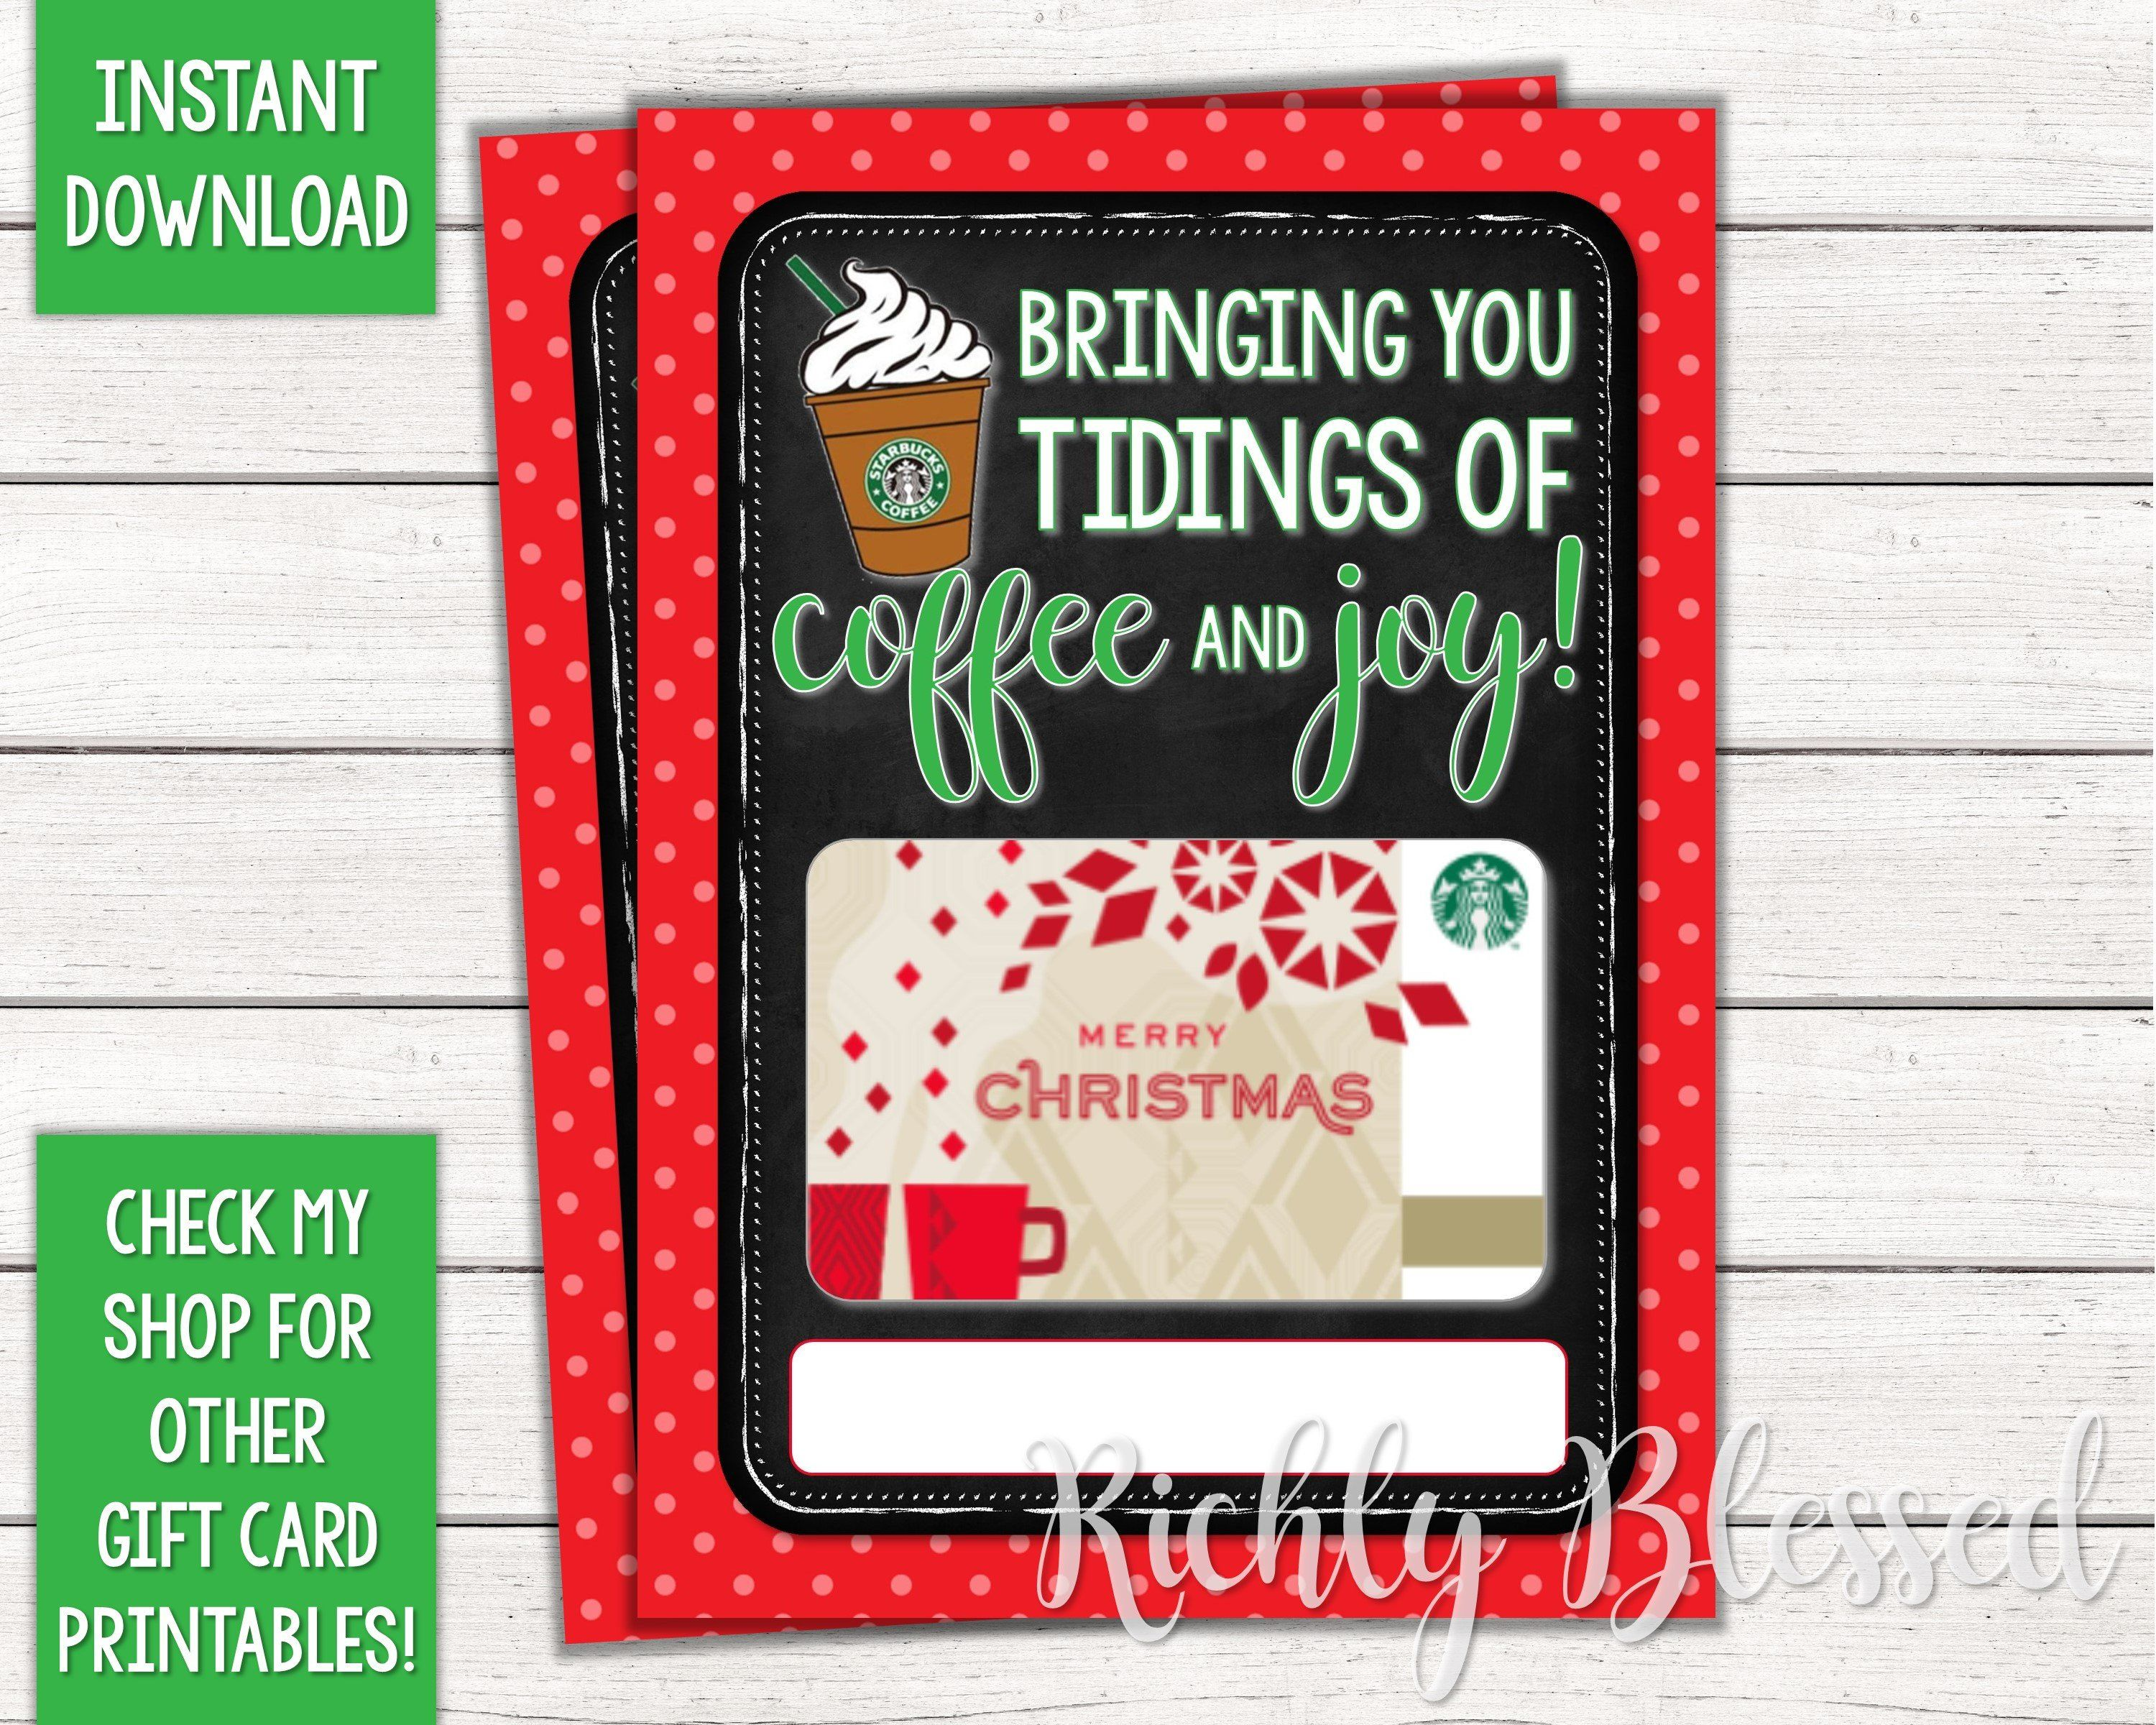 Instant Download Starbucks Gift Card Christmas Card Holder Etsy In 2020 Starbucks Gift Card Holder Starbucks Gift Card Christmas Gift Card Holders